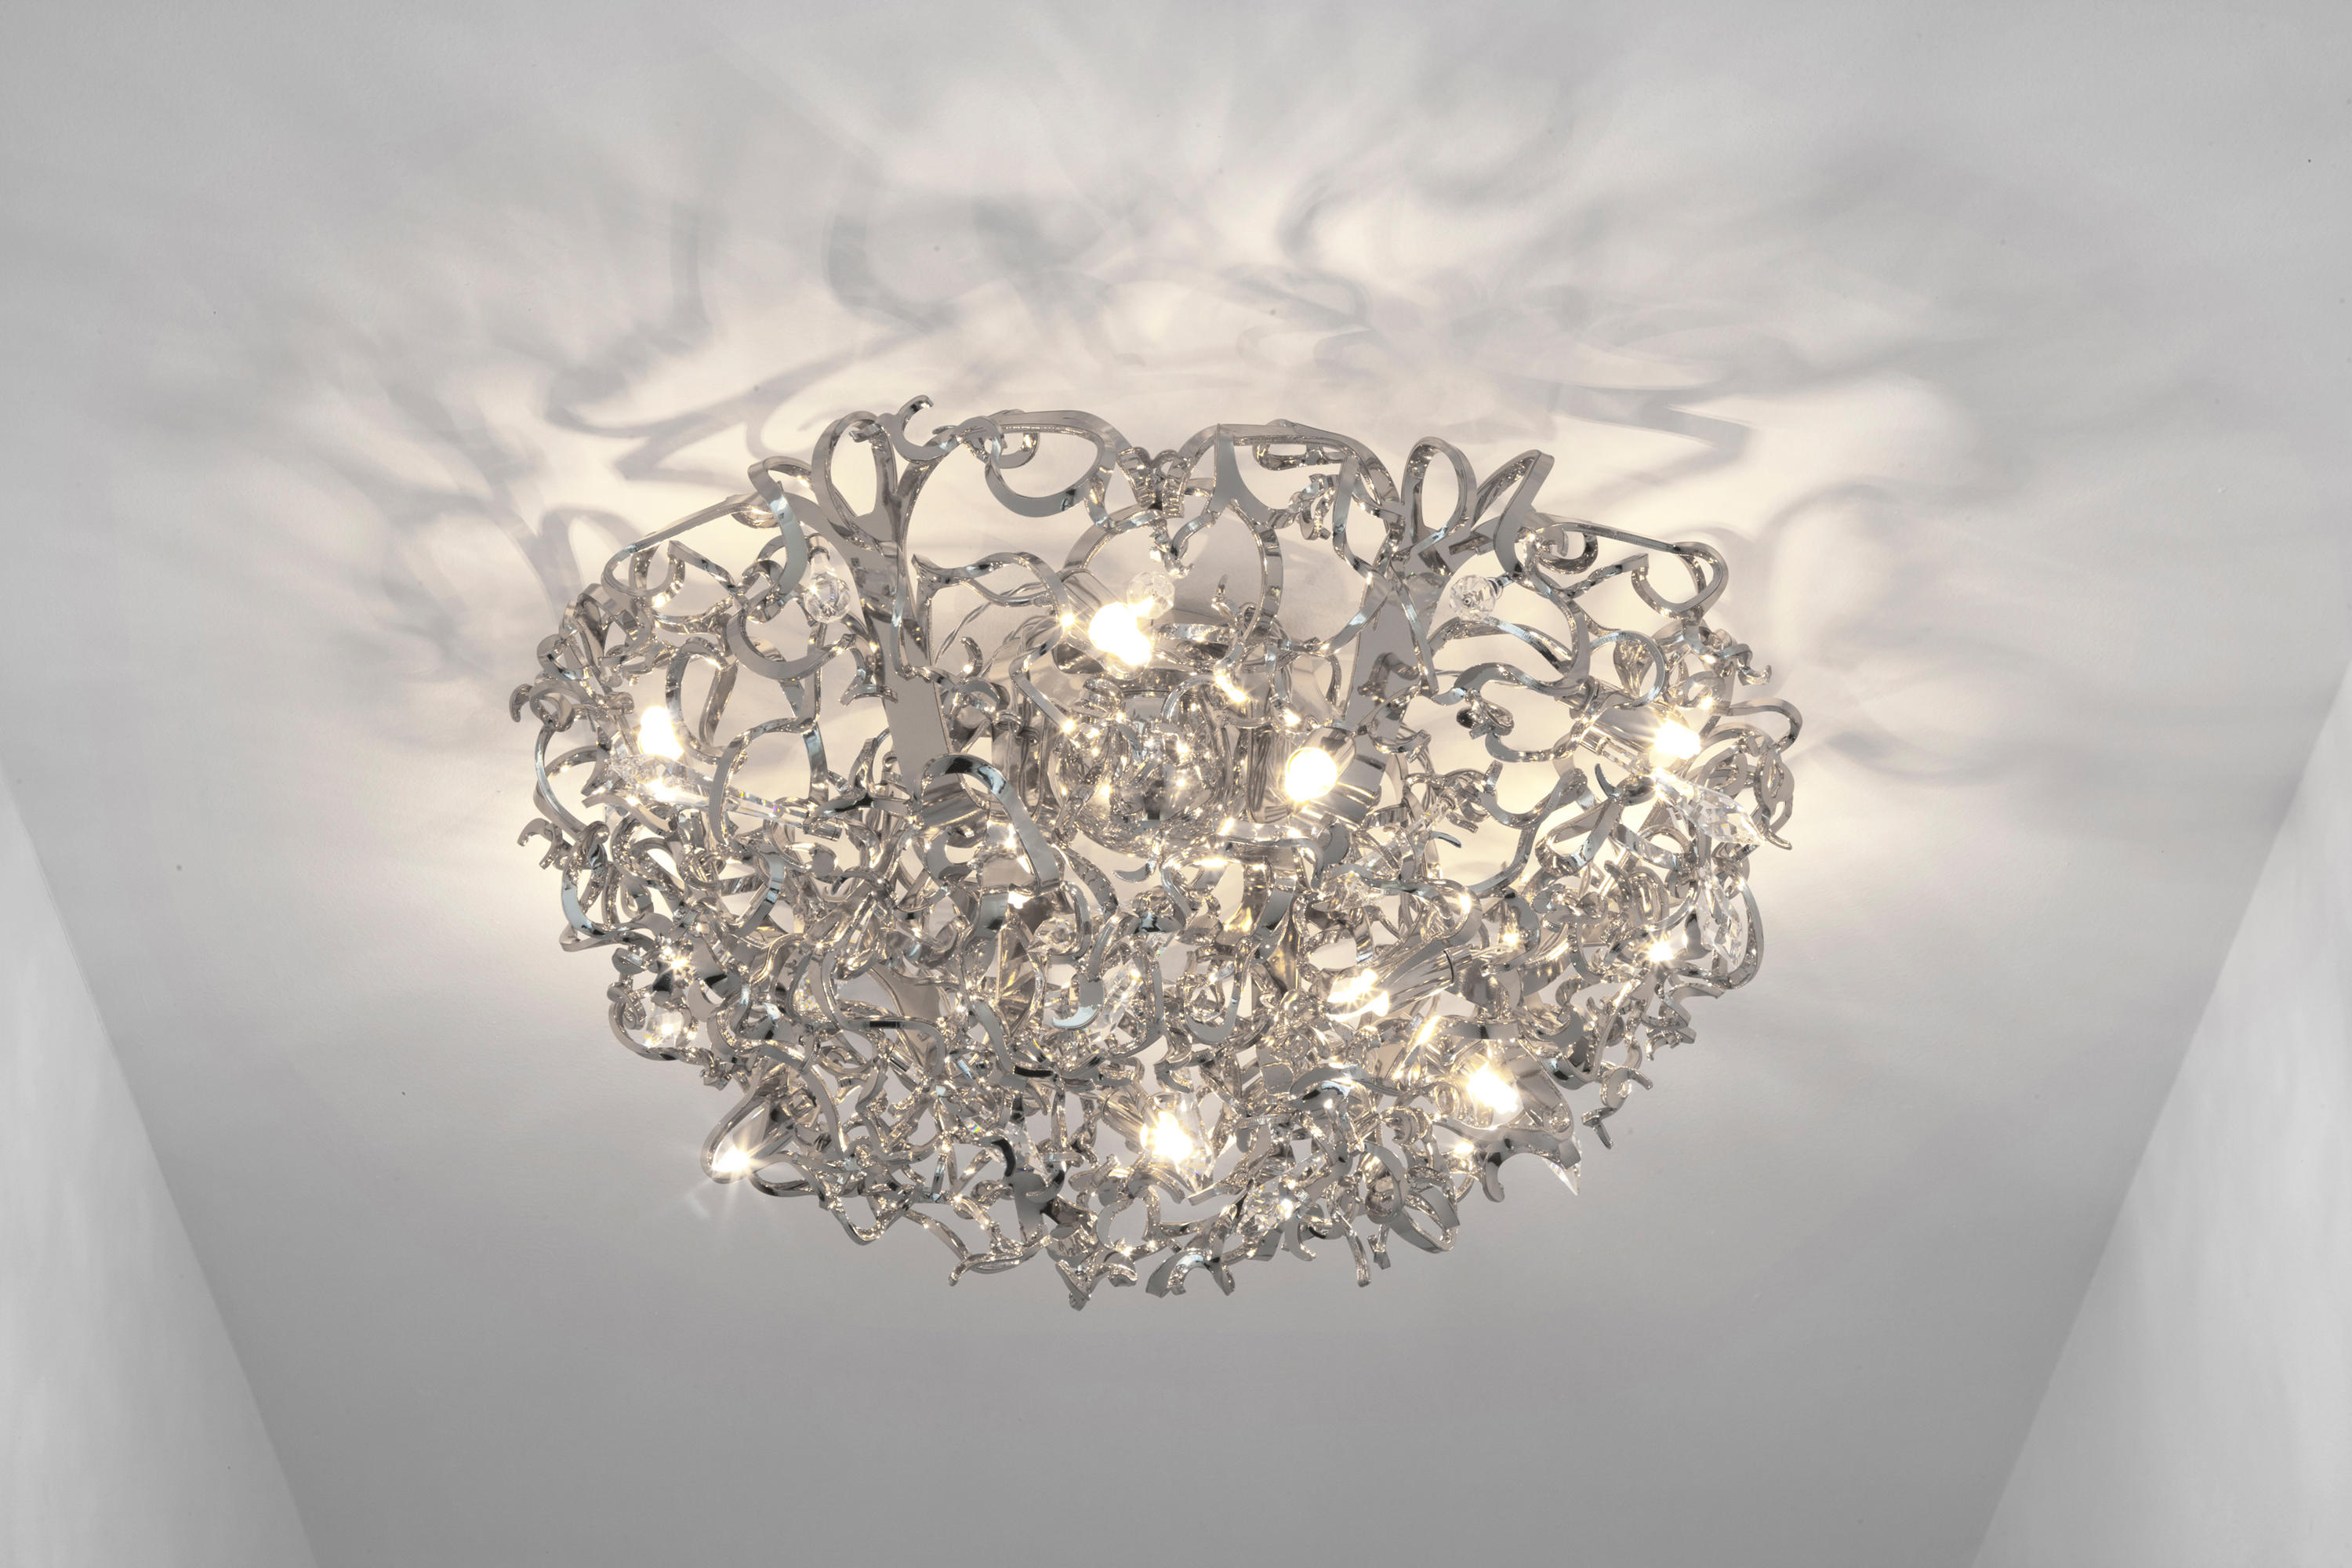 icy lady chandelier ceiling suspended chandeliers from. Black Bedroom Furniture Sets. Home Design Ideas